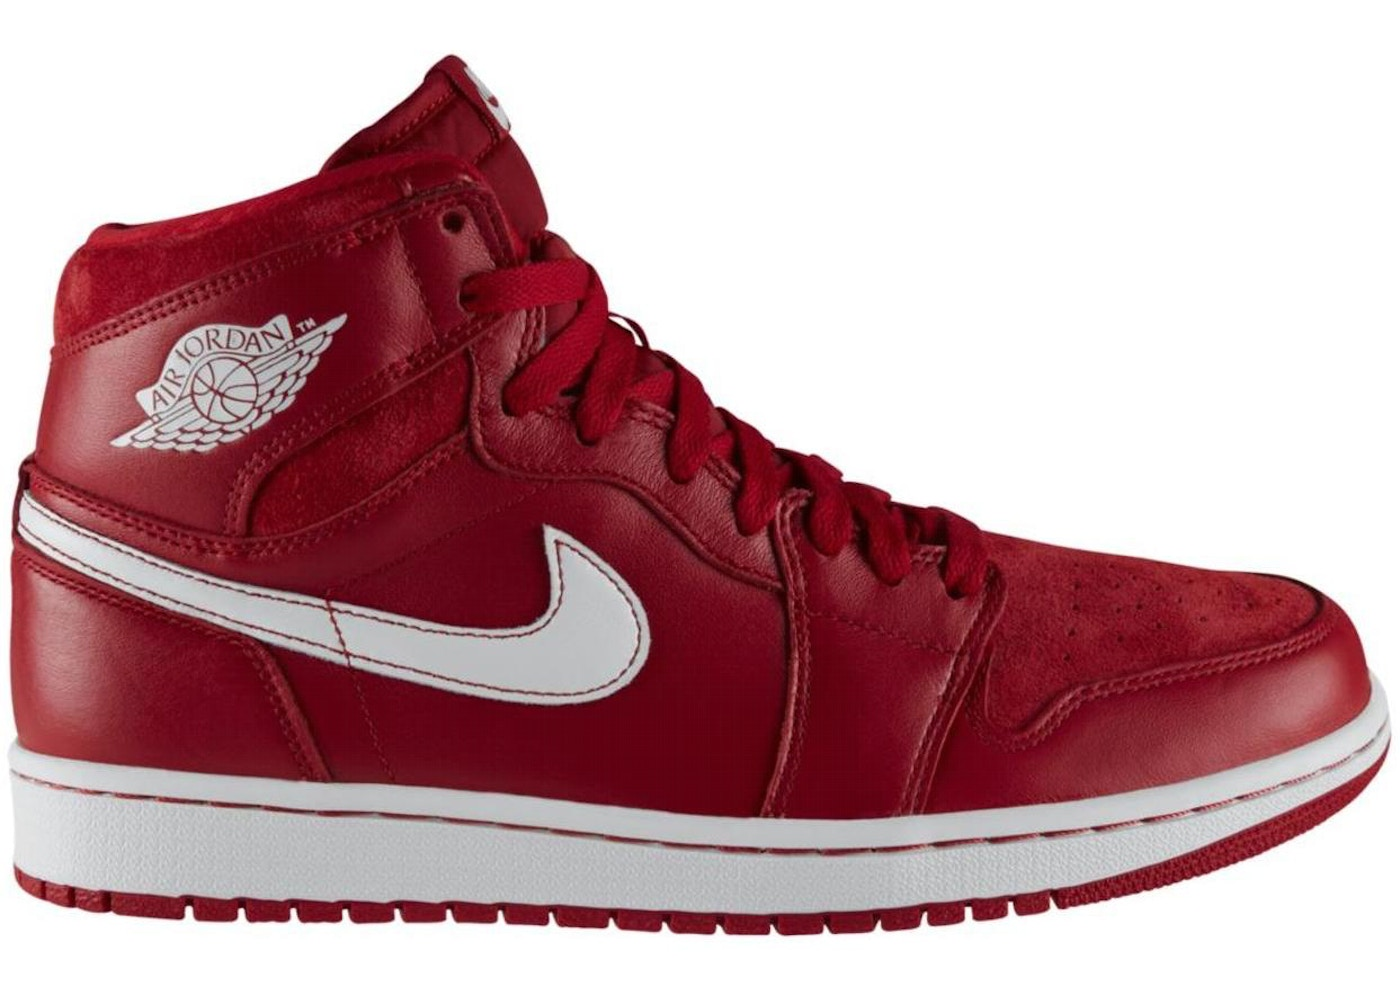 d8c85dcfe8a9 Air Jordan 1 Size 15 Shoes - Price Premium